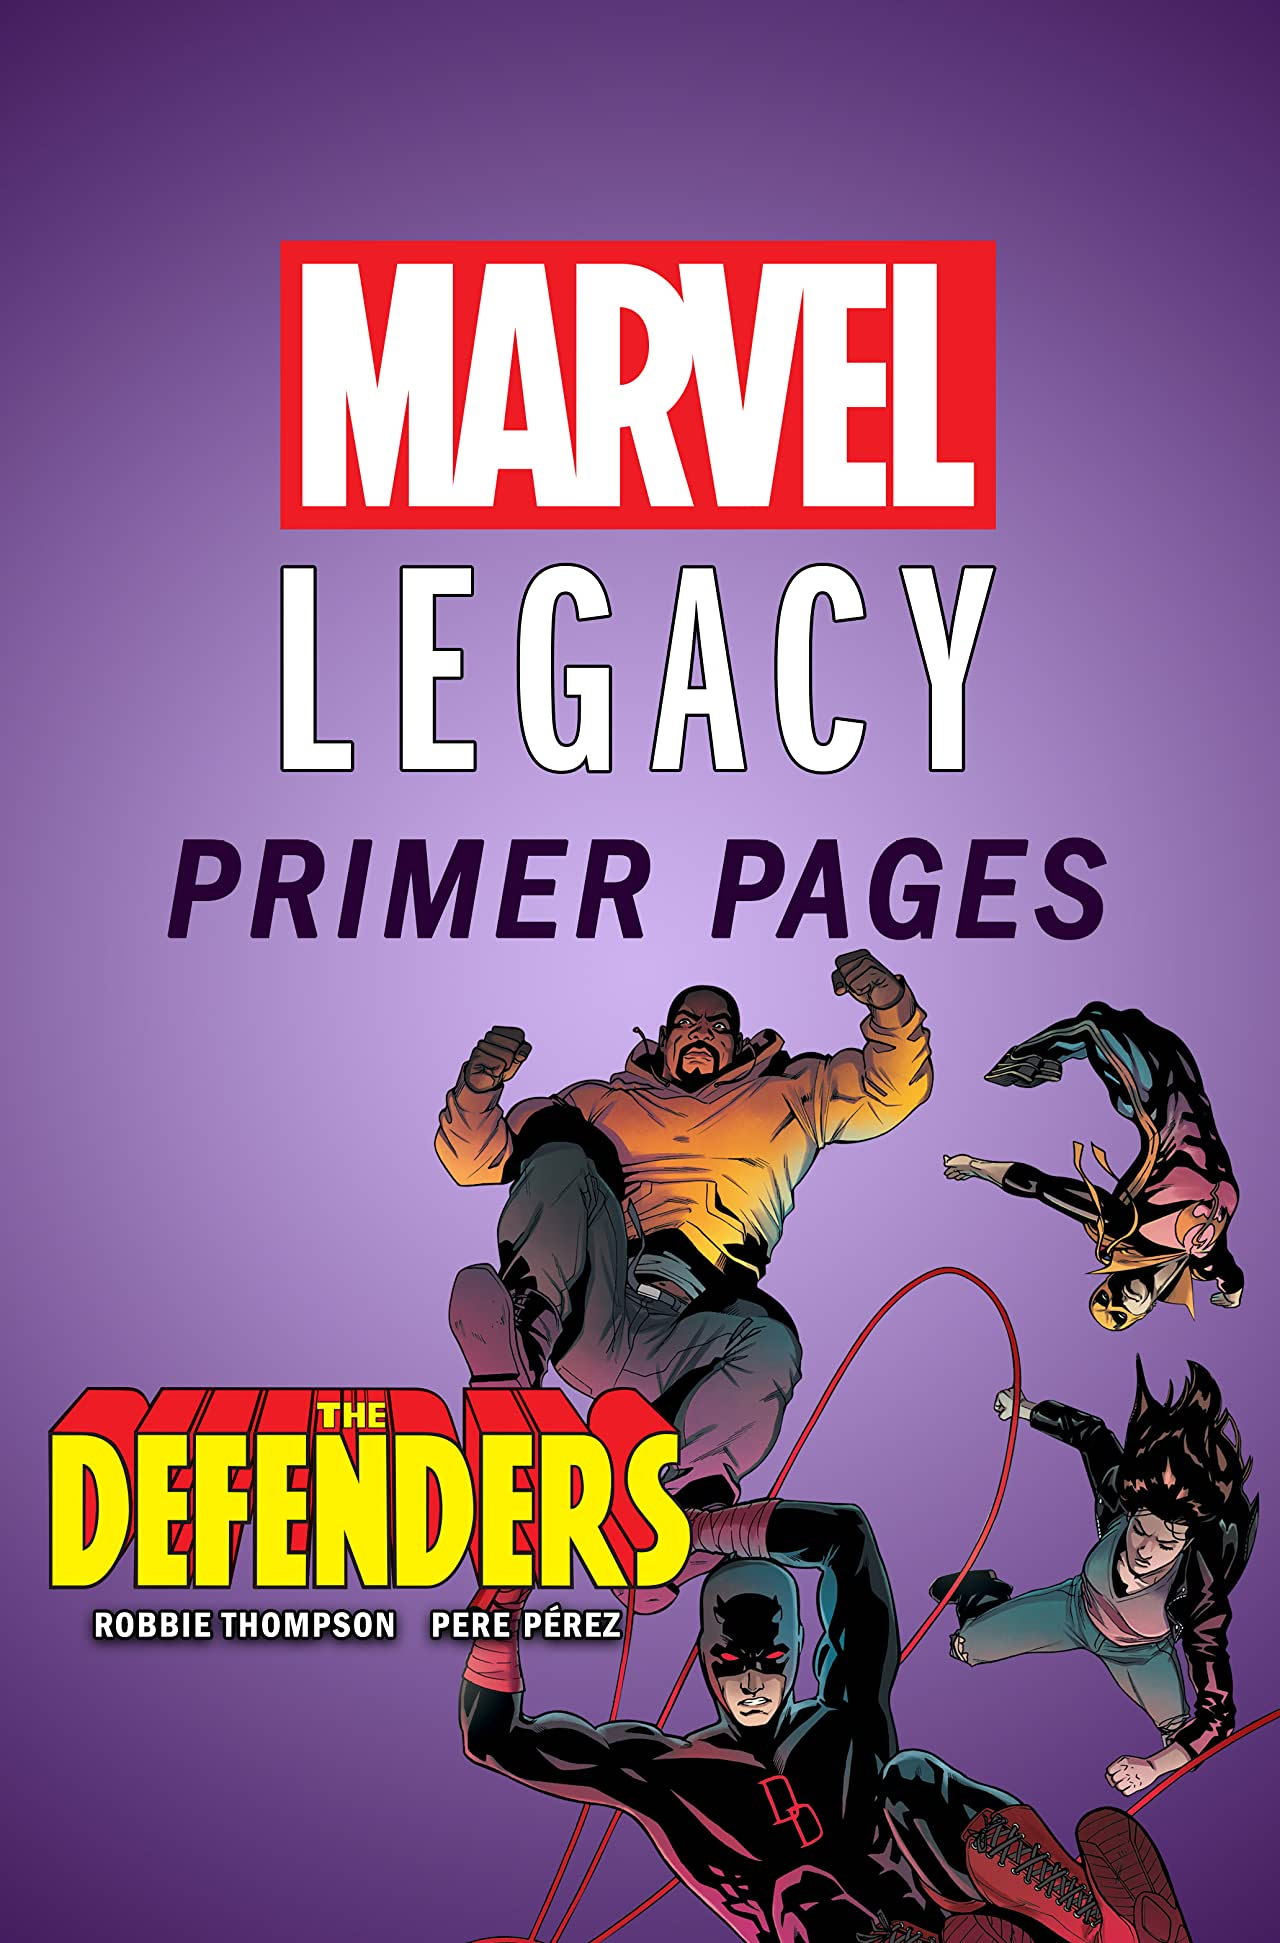 Defenders - Marvel Legacy Primer Pages